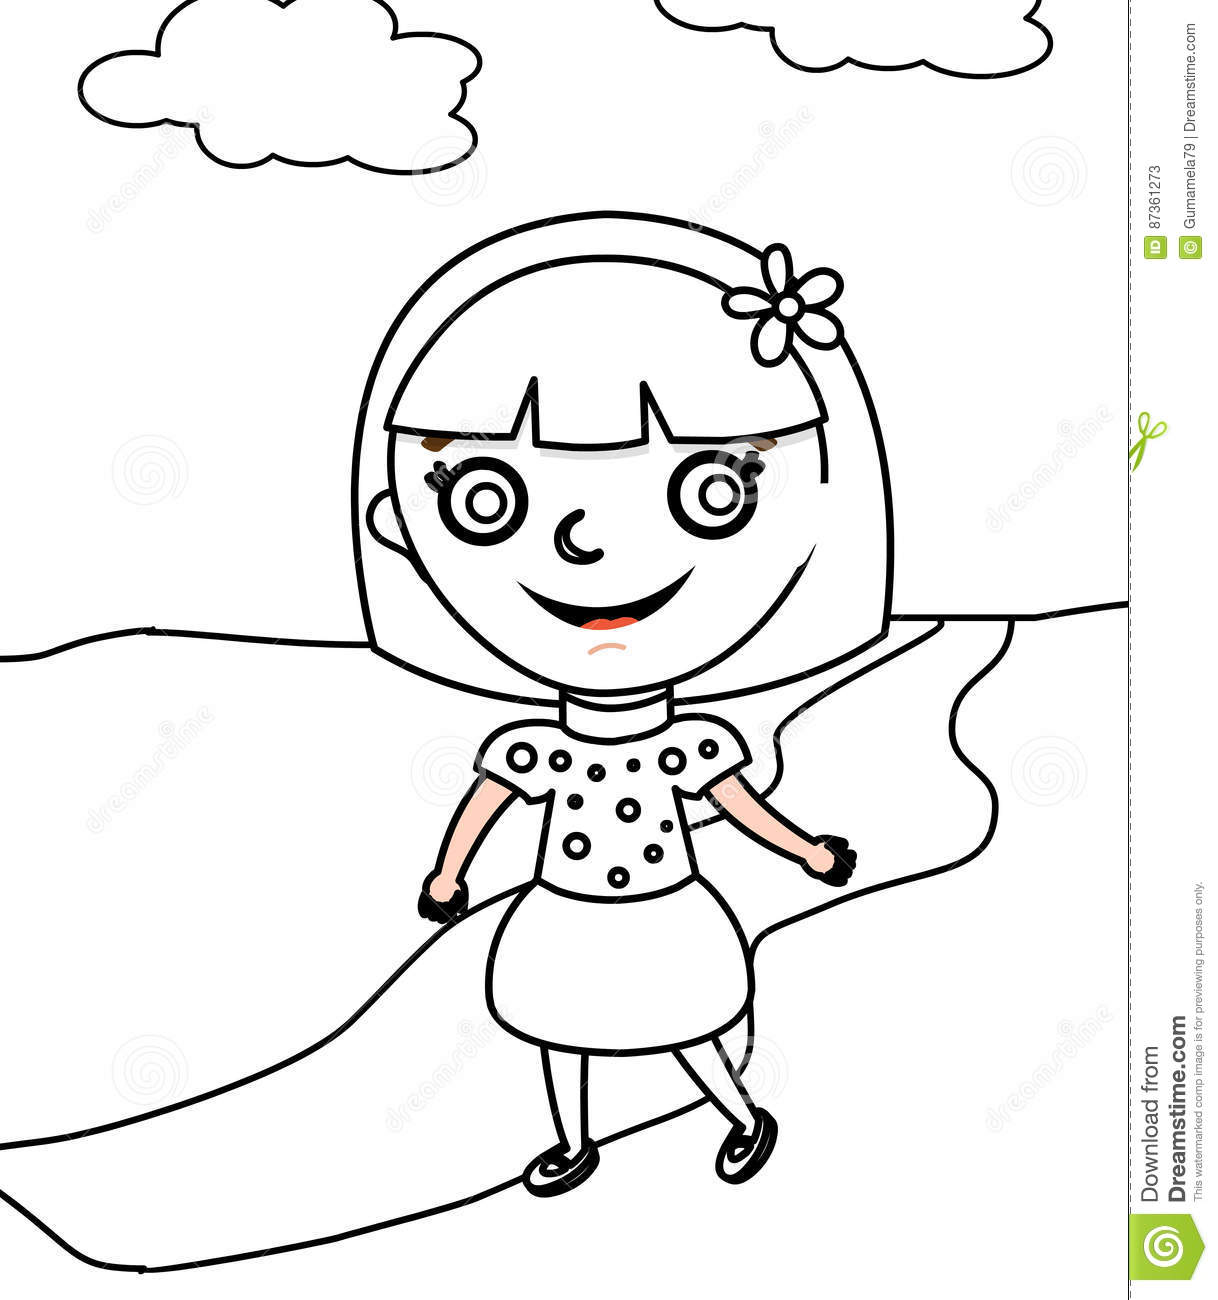 in a polka dots dress coloring page stock illustration